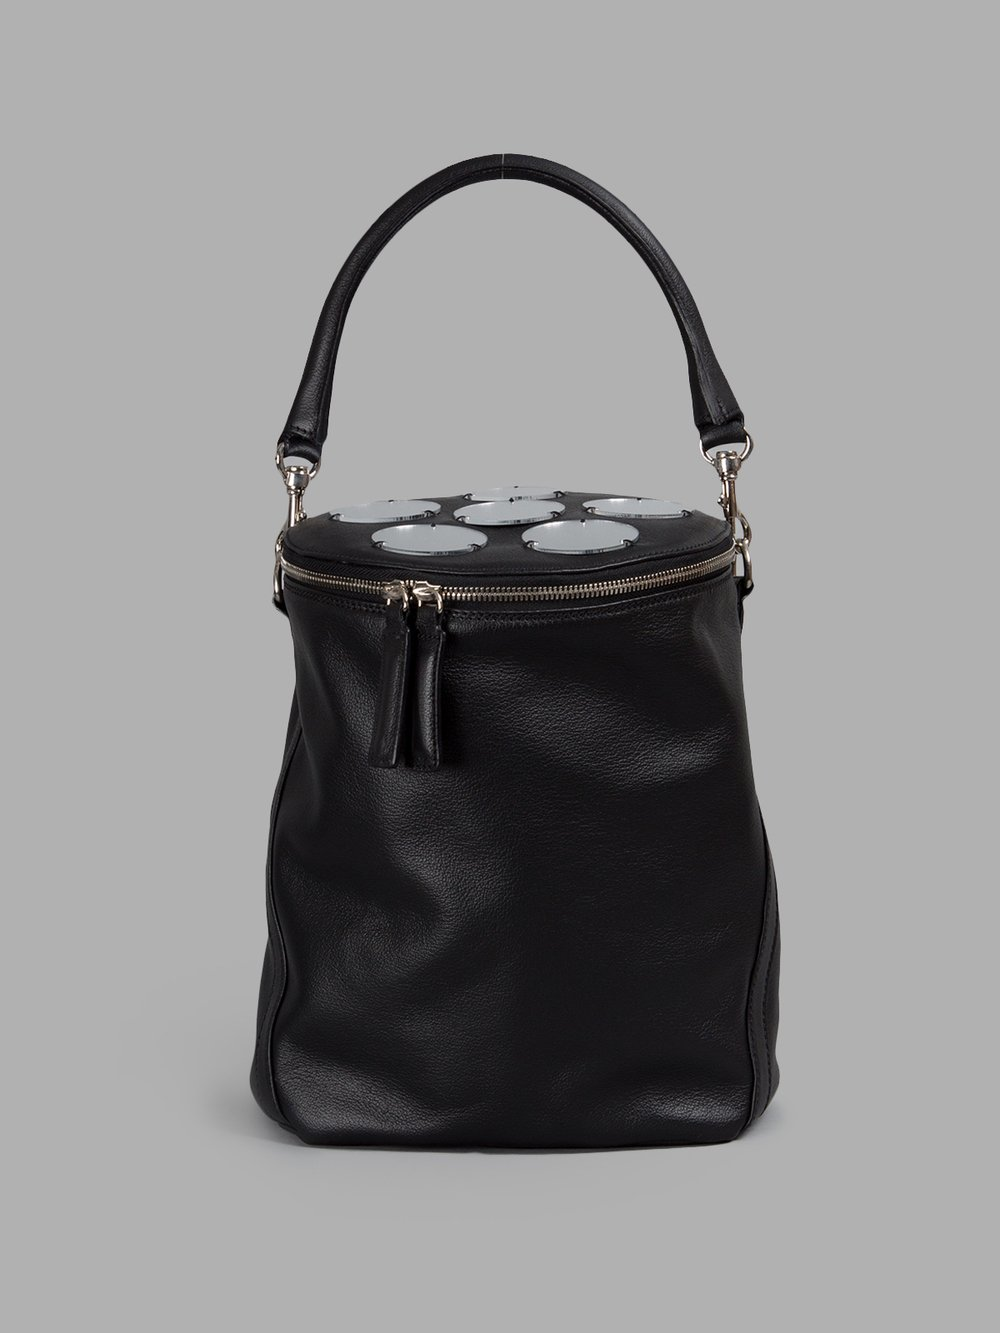 ANDREA INCONTRI WOMEN'S BLACK CYLINDRICAL BAG WITH MIRROR DETAILS